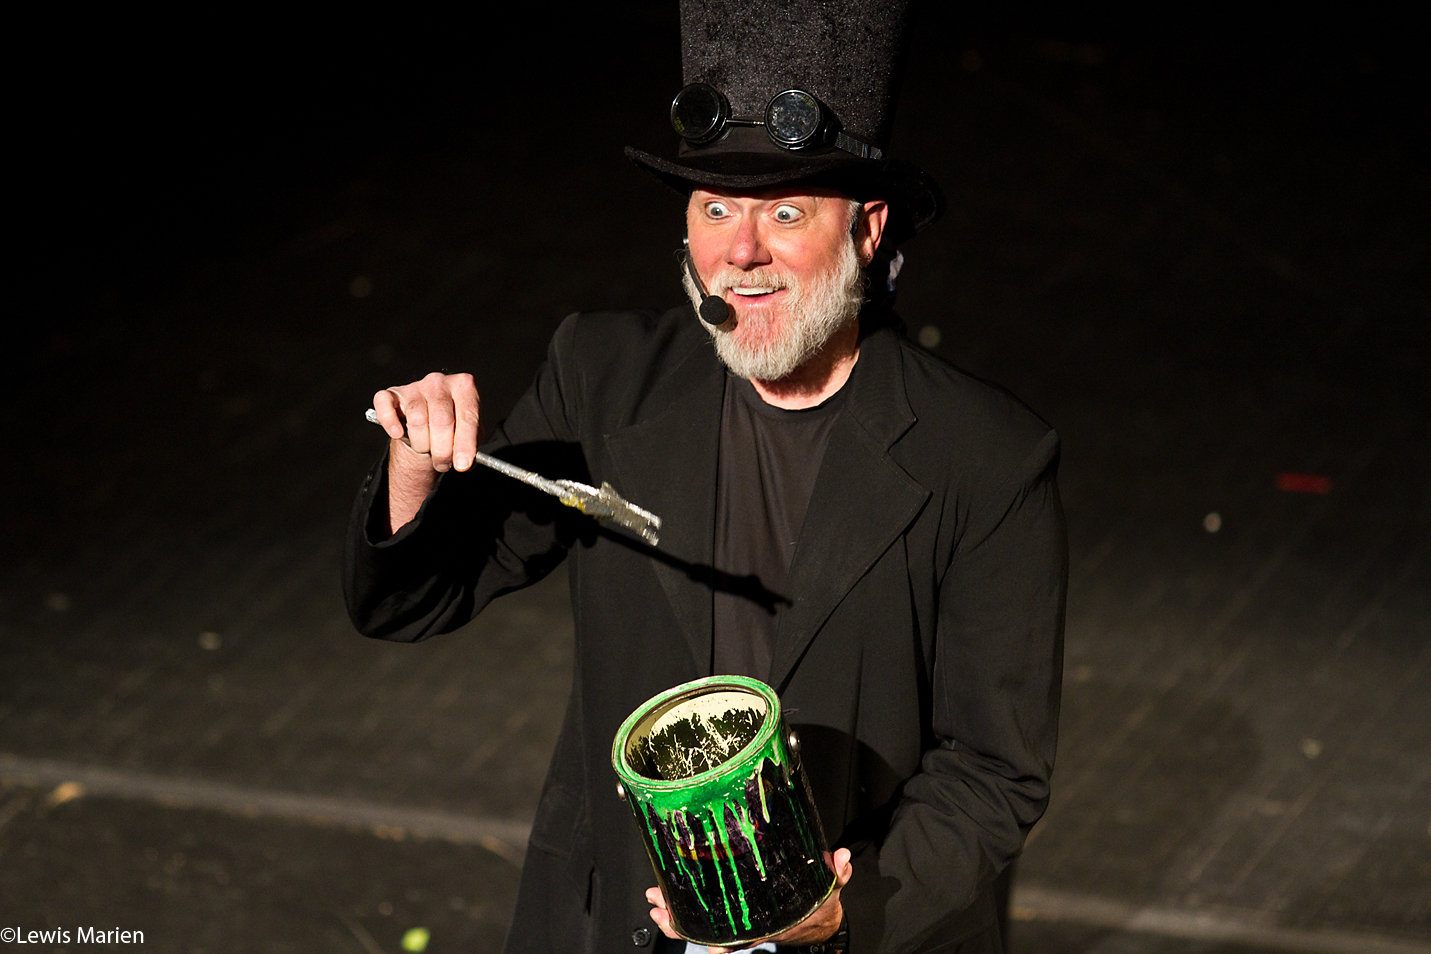 """Steve Richerson, of Frog Pond, Ala., also known by his stage name """"Steve Trash"""", entertains Galesburg and Monmouth area school students Nov. 10 at The Orpheum Theatre in Galesburg, Ill."""